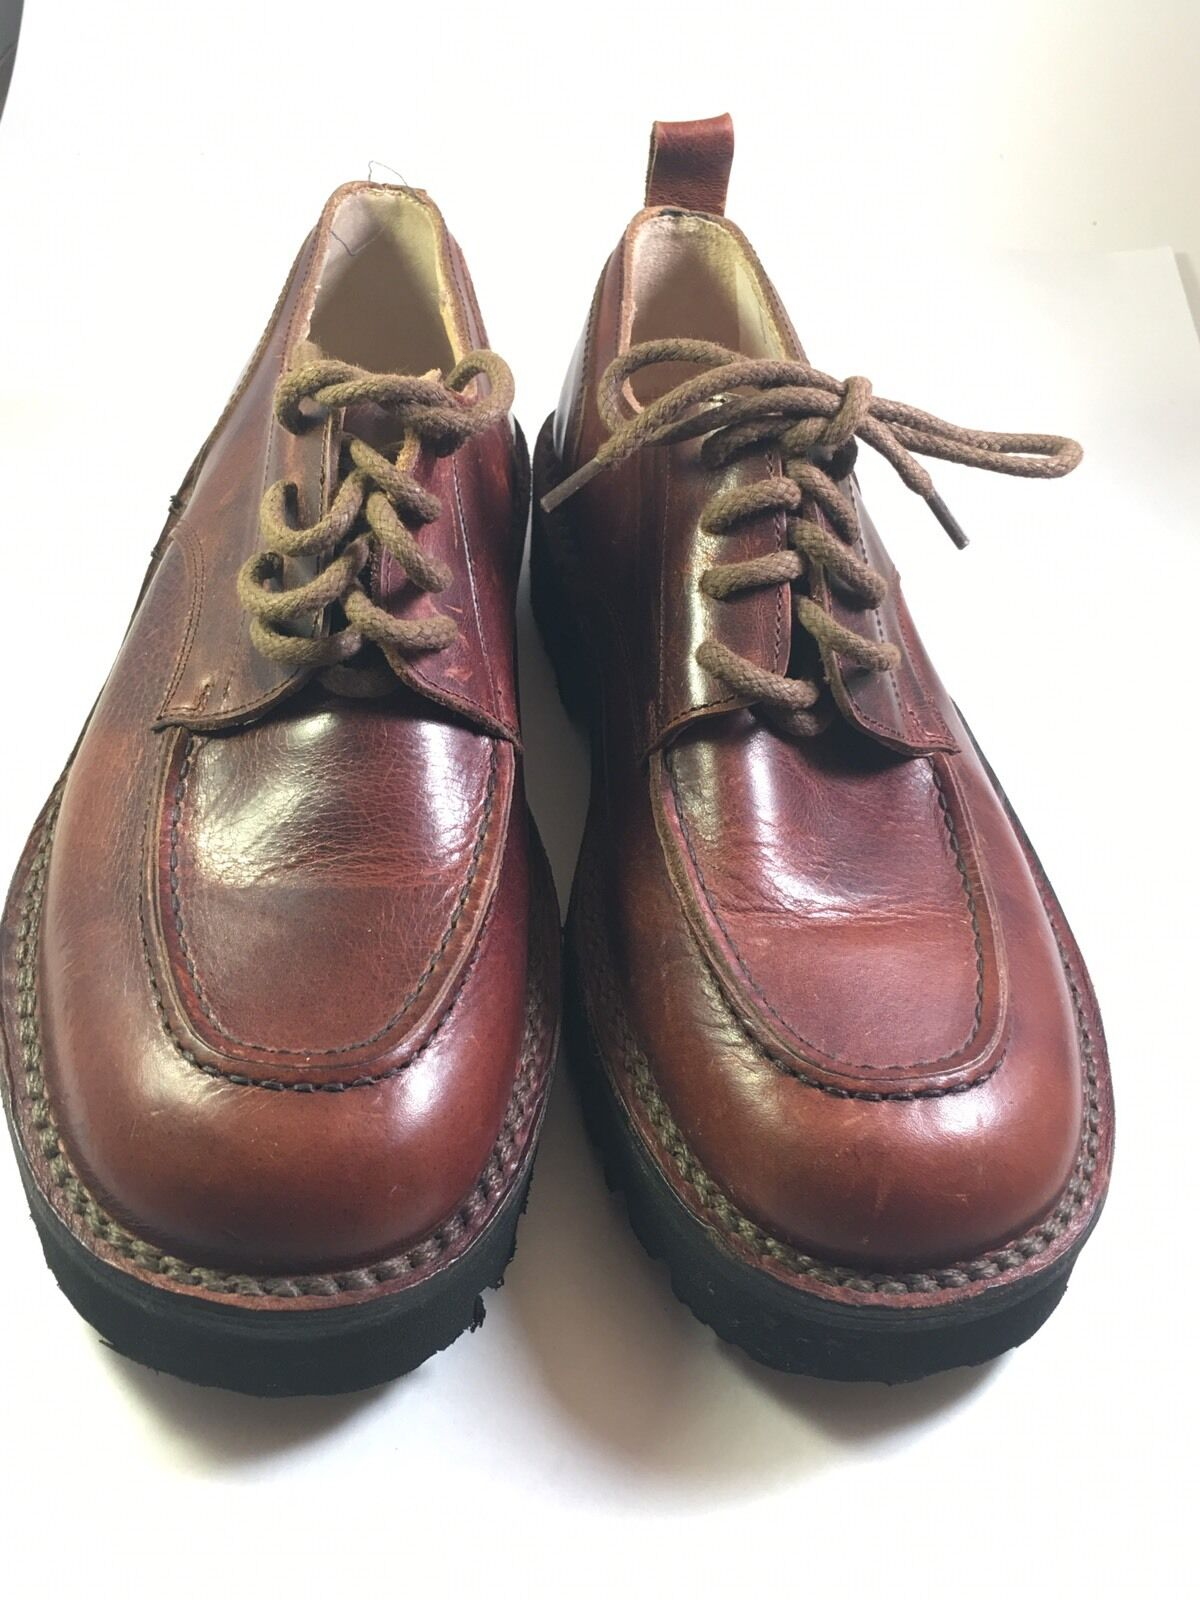 J CREW Mens Brown Leather shoes Size 40       1997 SAMPLE